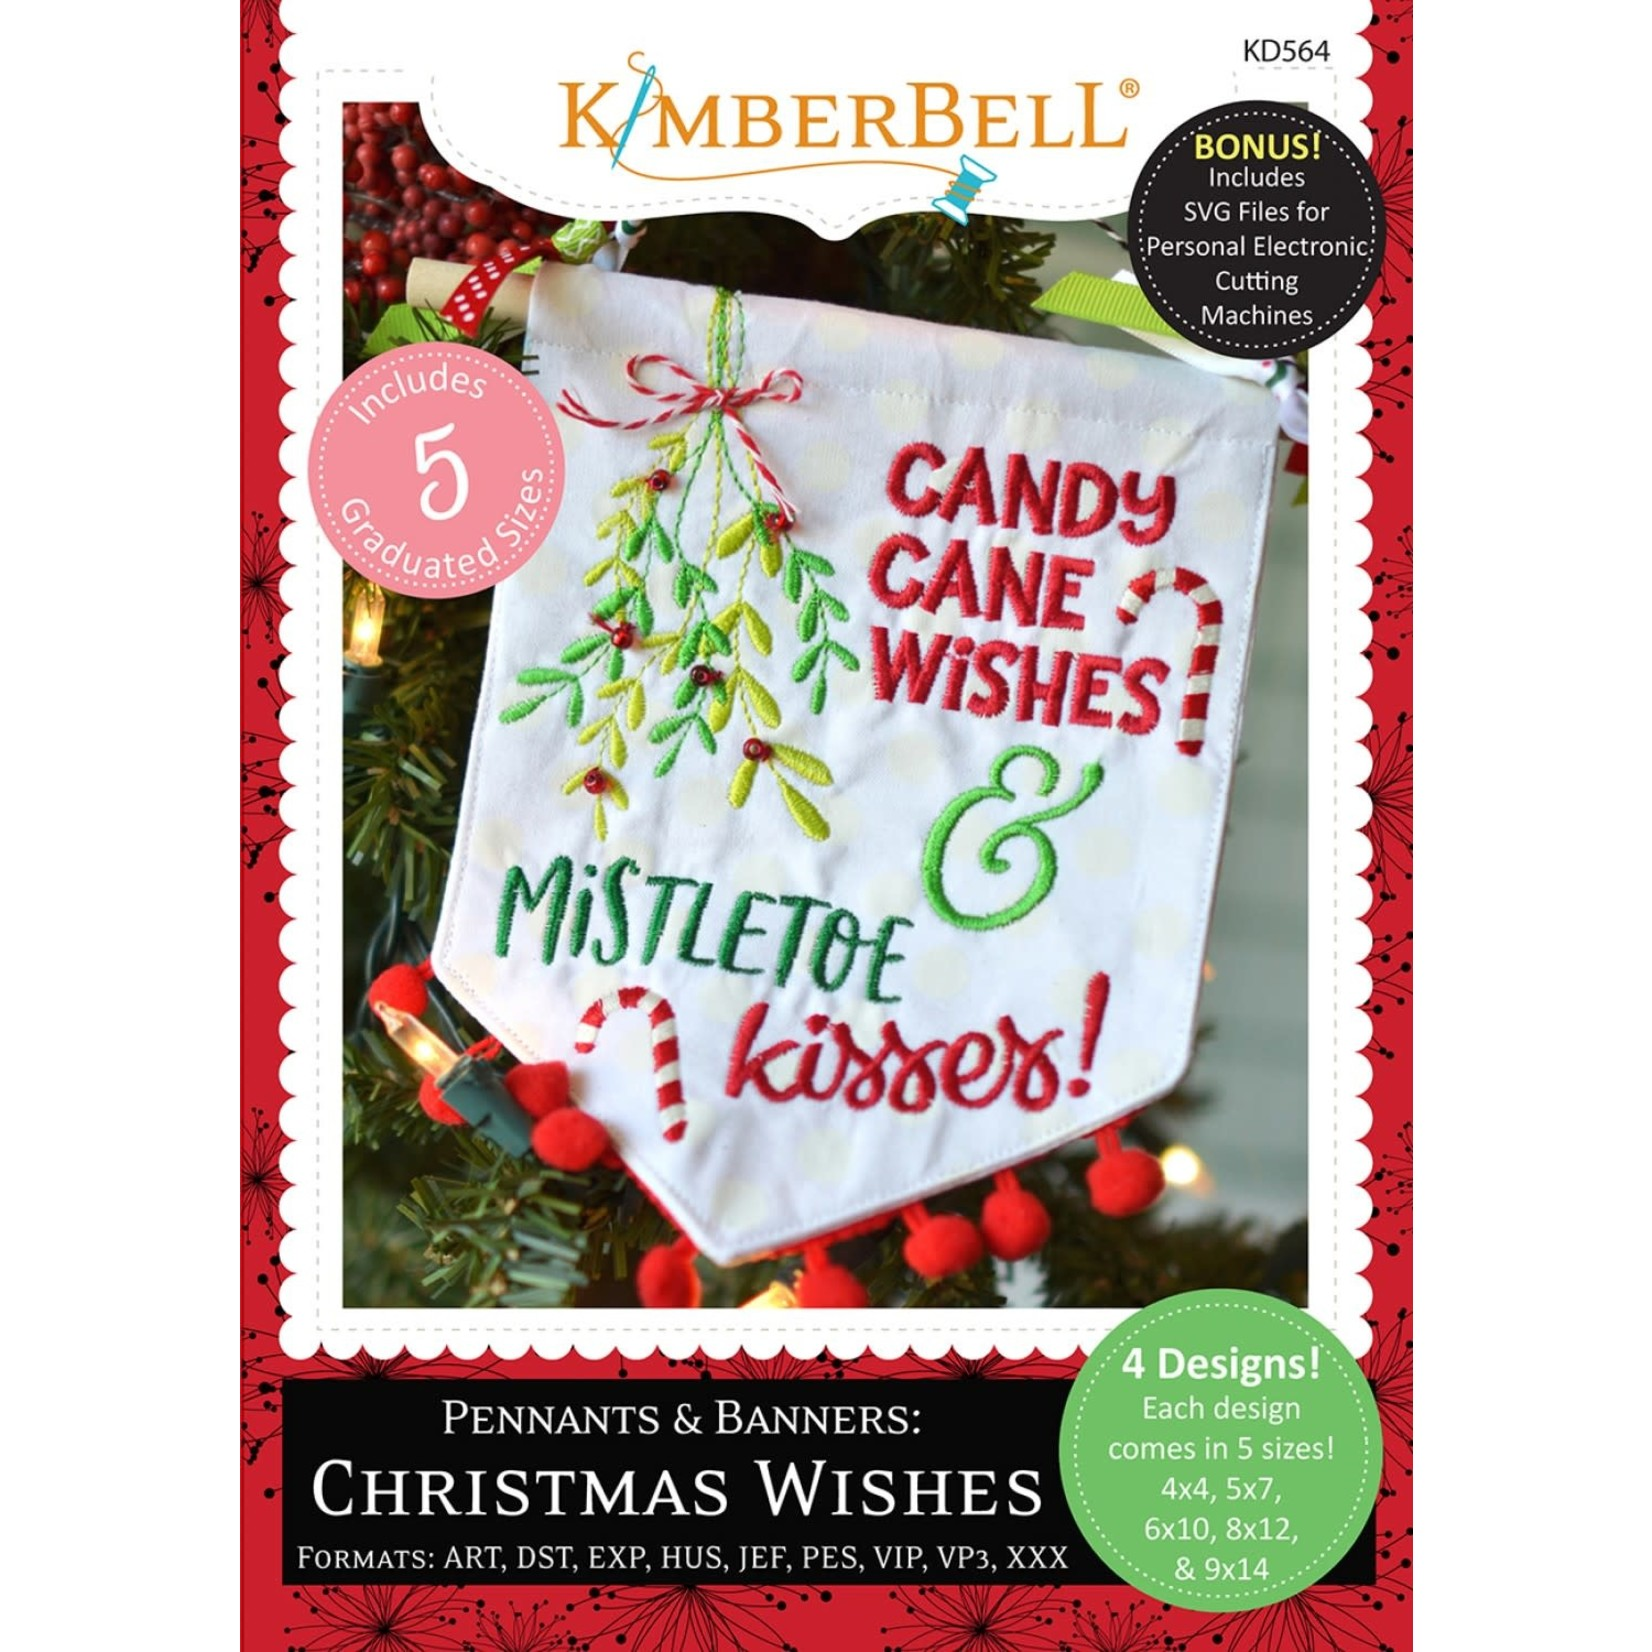 KIMBERBELL DESIGNS Pennants & Banners: Christmas Wishes